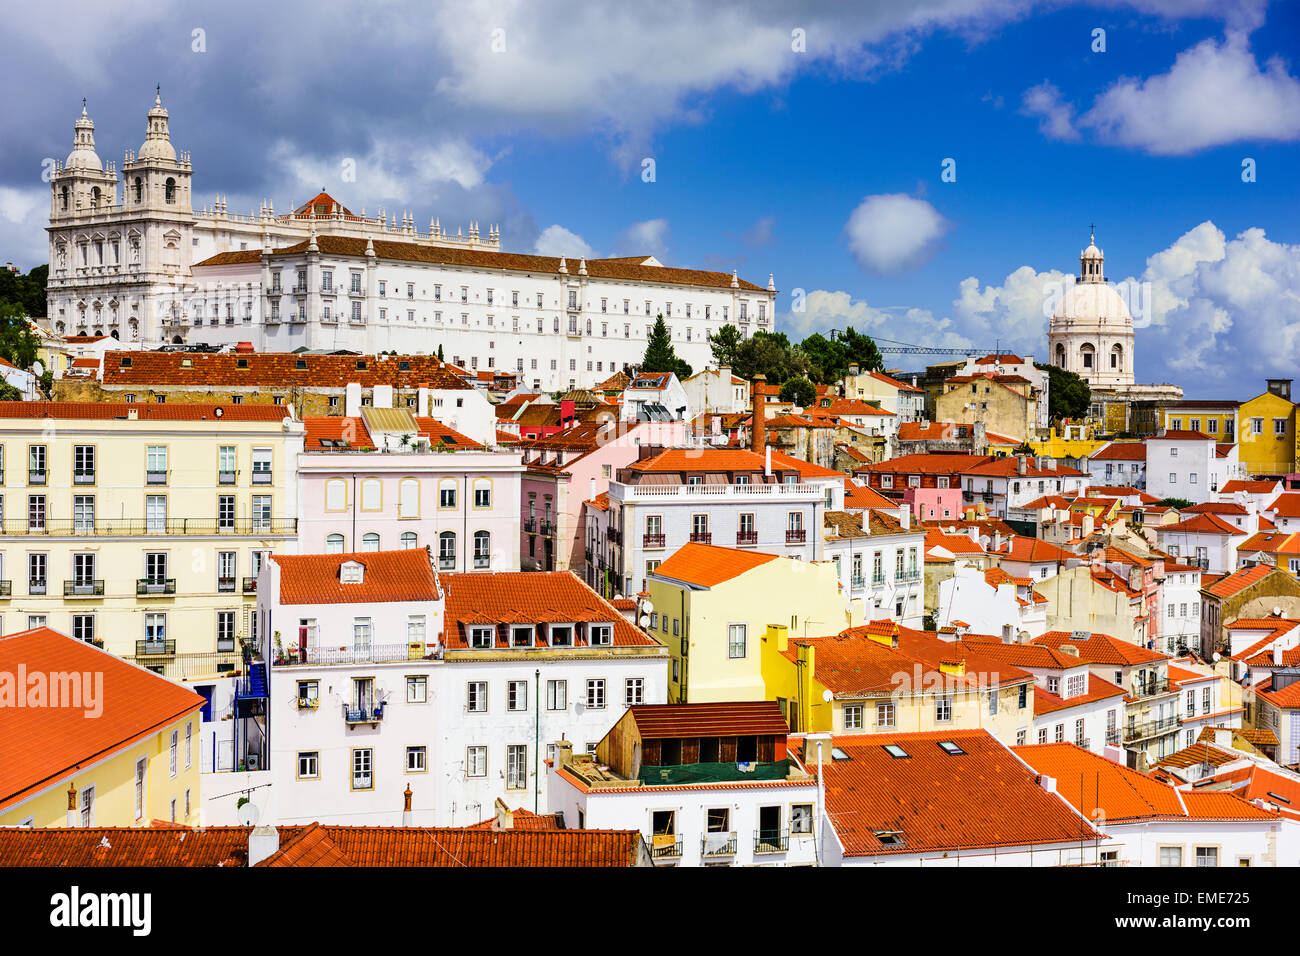 Lisbon, Portugal in the Alfama District. - Stock Image